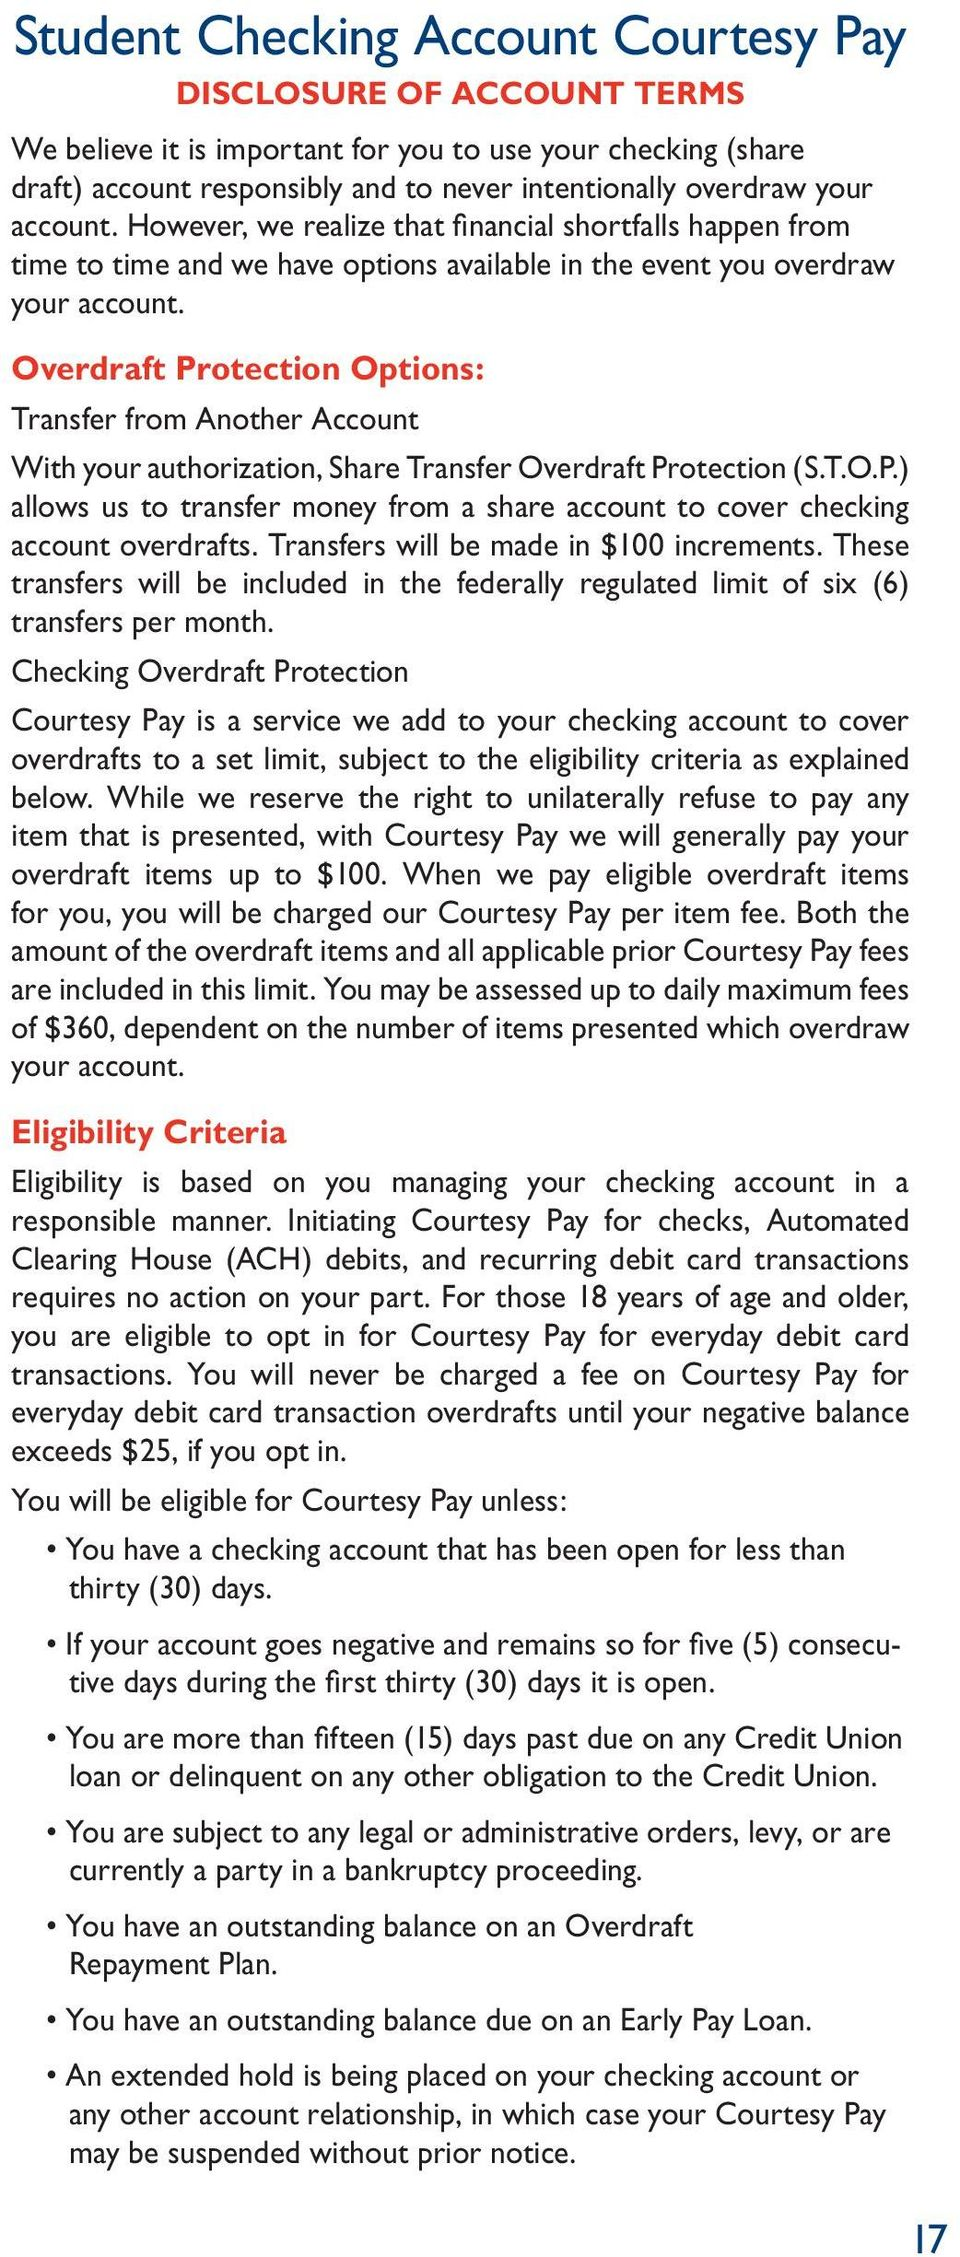 Overdraft Protection Options: Transfer from Another Account With your authorization, Share Transfer Overdraft Protection (S.T.O.P.) allows us to transfer money from a share account to cover checking account overdrafts.